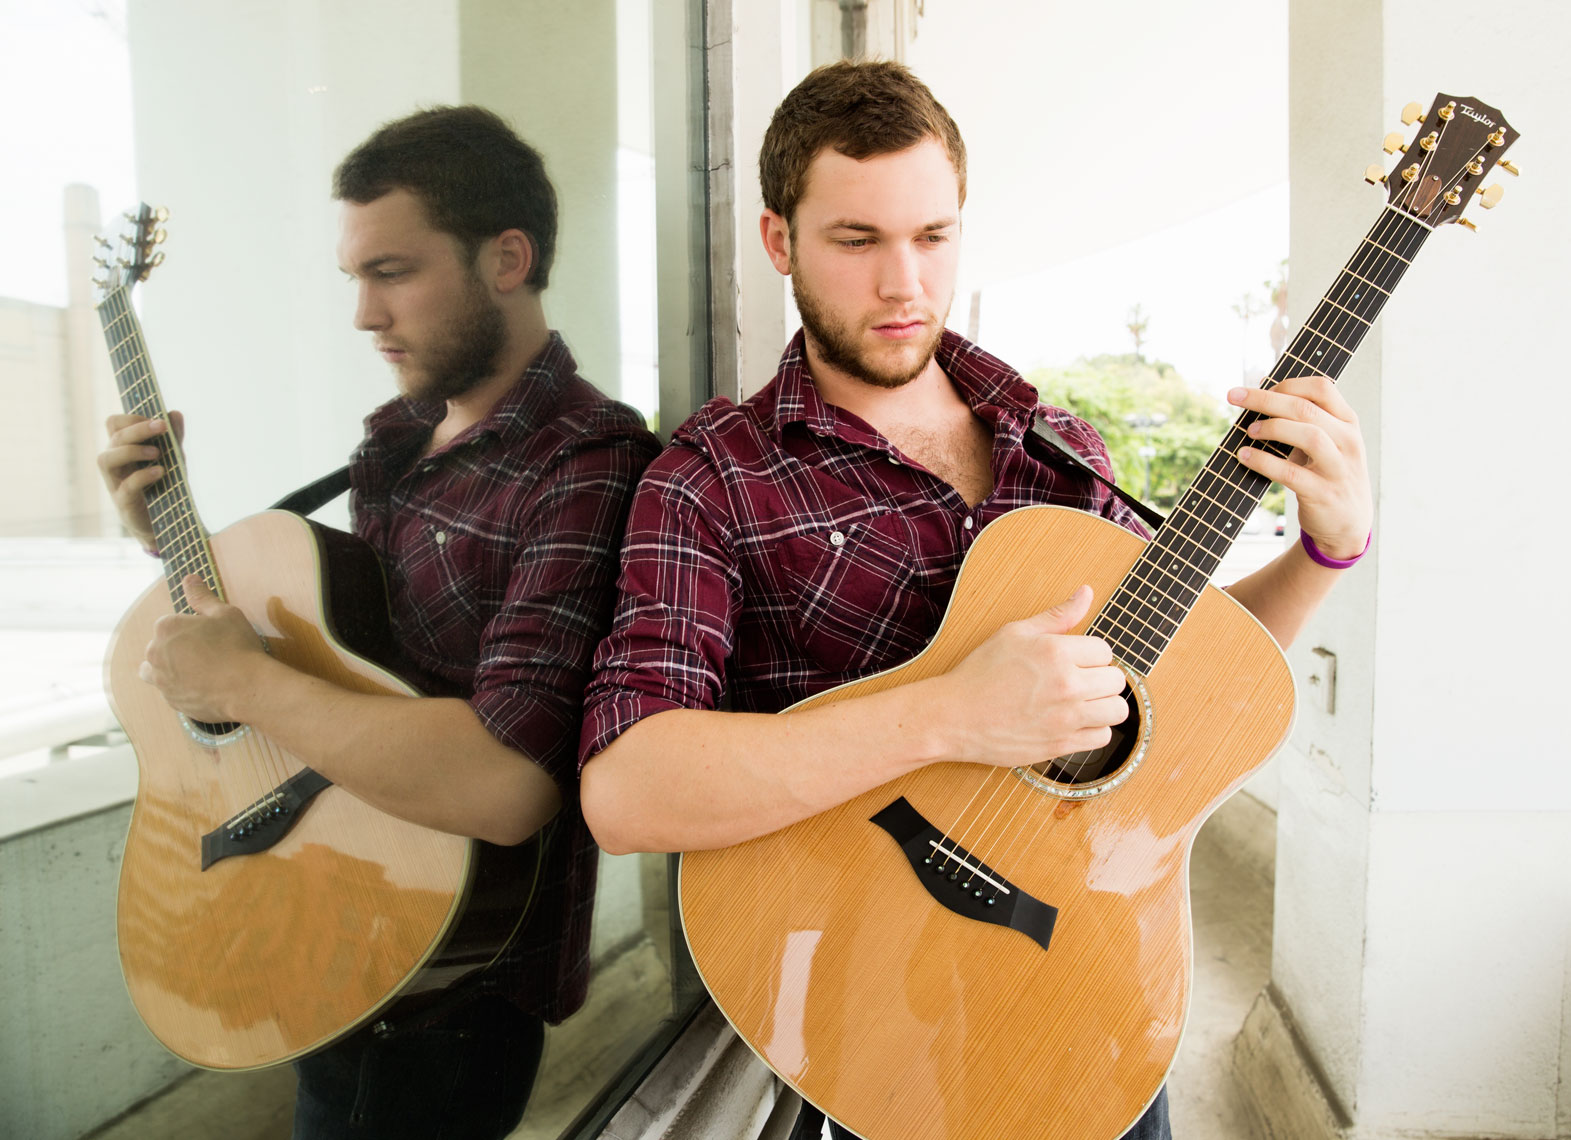 PhillipPhillips_6543.jpg